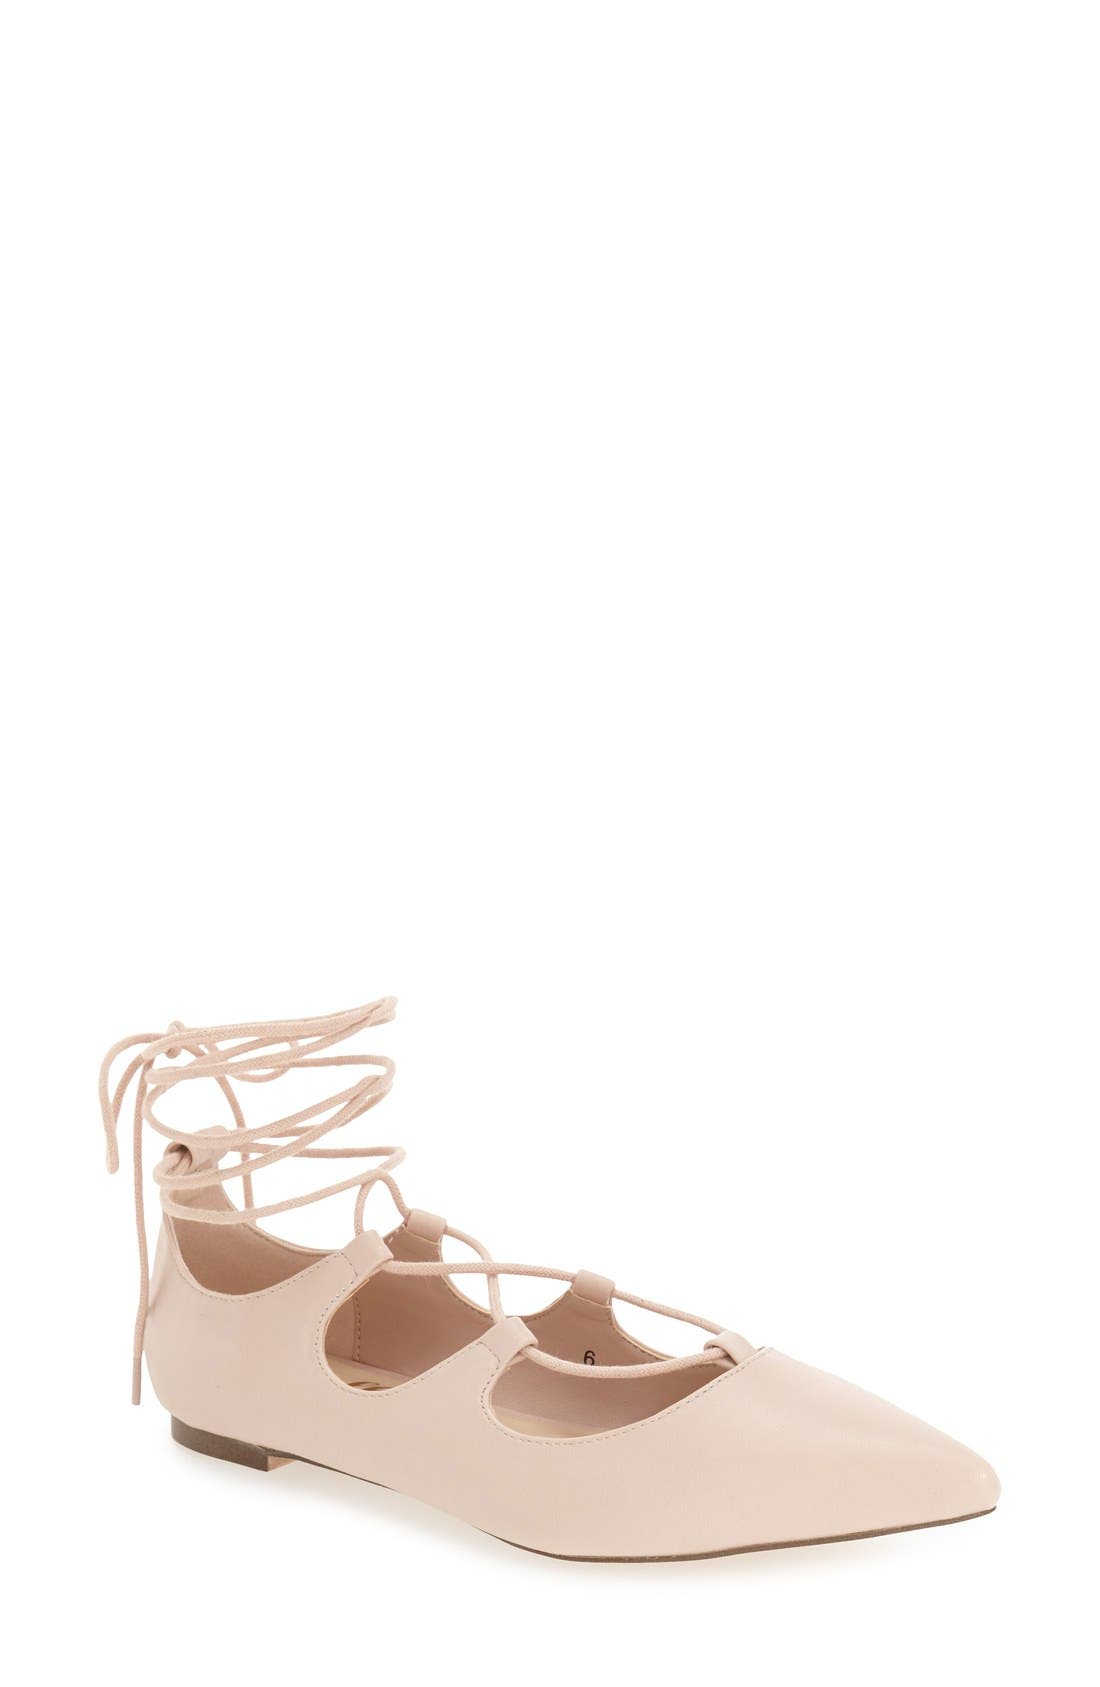 Alternate Image 1 Selected - Callisto 'Rian' Ghillie Lace Pointy Toe Flat (Women)